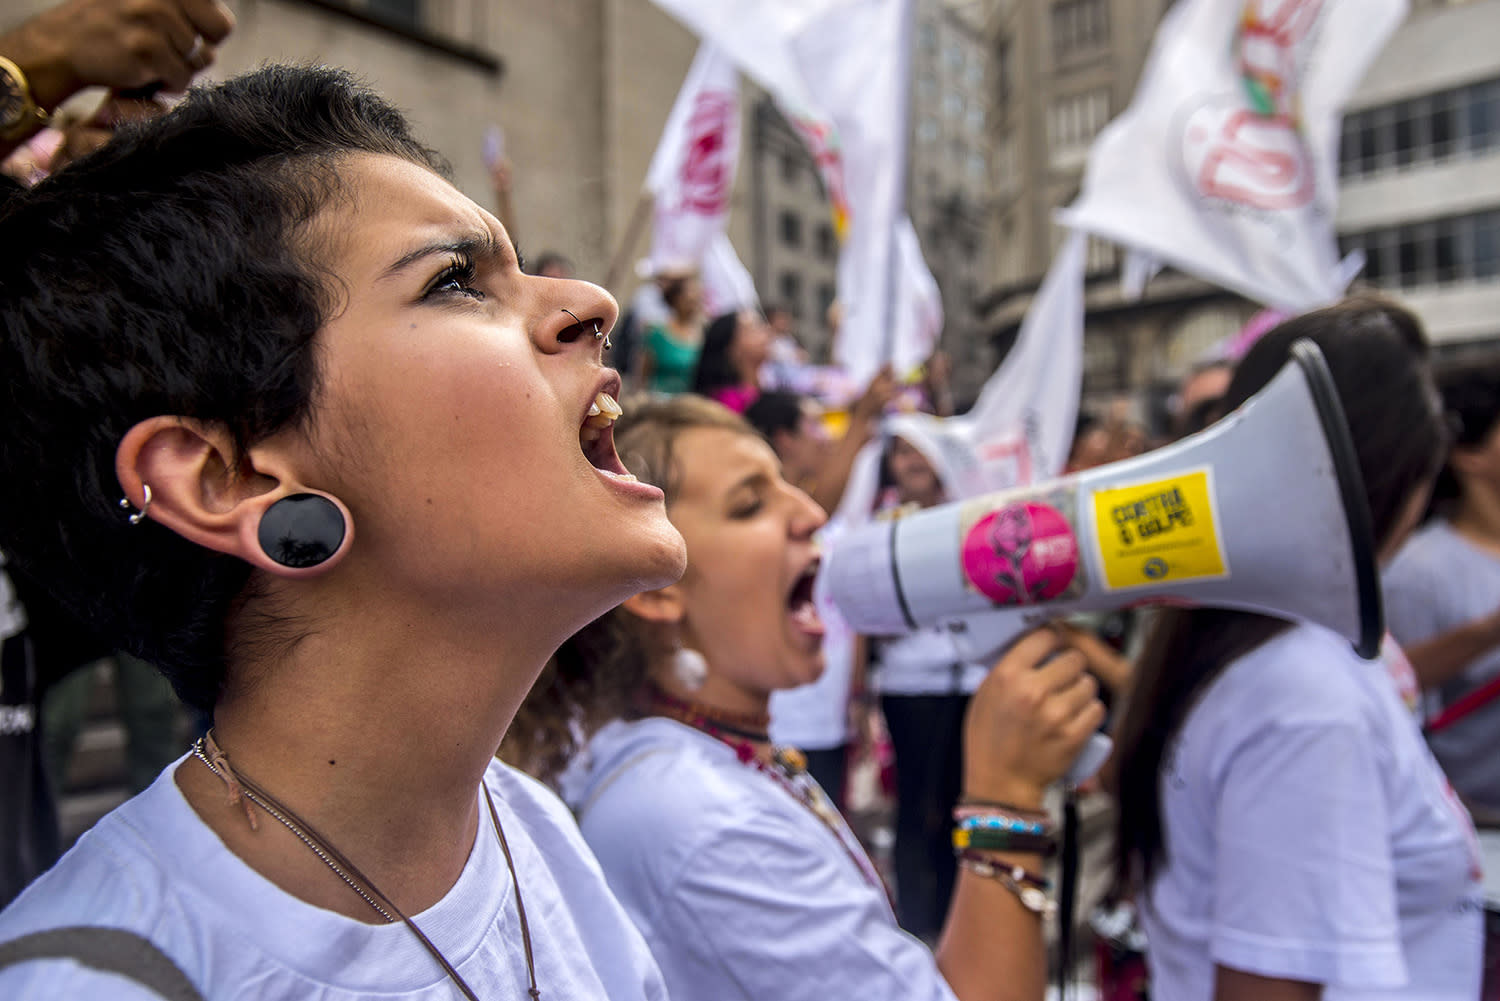 <p>A woman shouts during a protest commemorating the International Women's Day on March 8, 2017 in Sao Paulo, Brazil. (Cris Faga/LatinContent/Getty Images) </p>